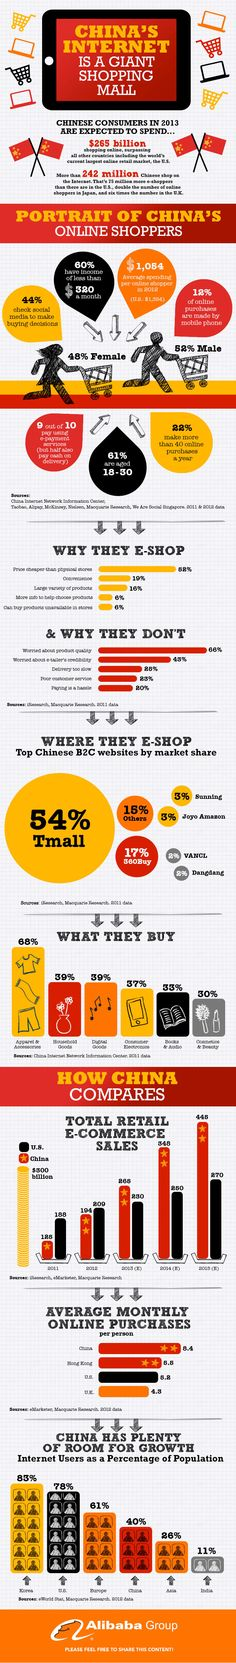 Portrait of china's online shoppers